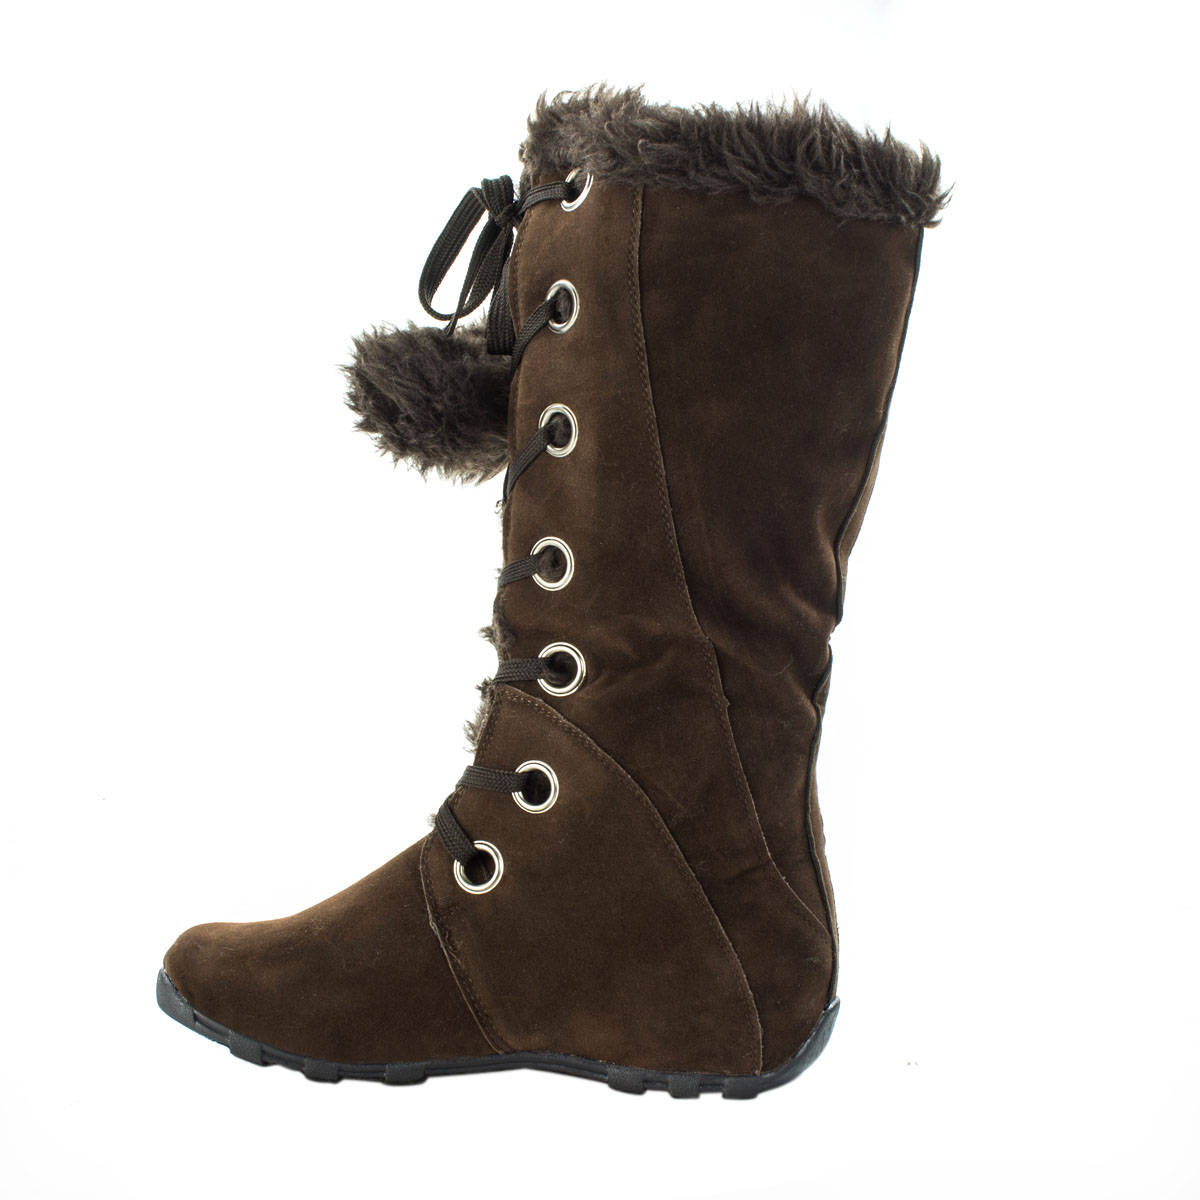 Quot Mary Quot Pom Pom Fur Winter Boots 183 Sophisticates Closet 183 Online Store Powered By Storenvy